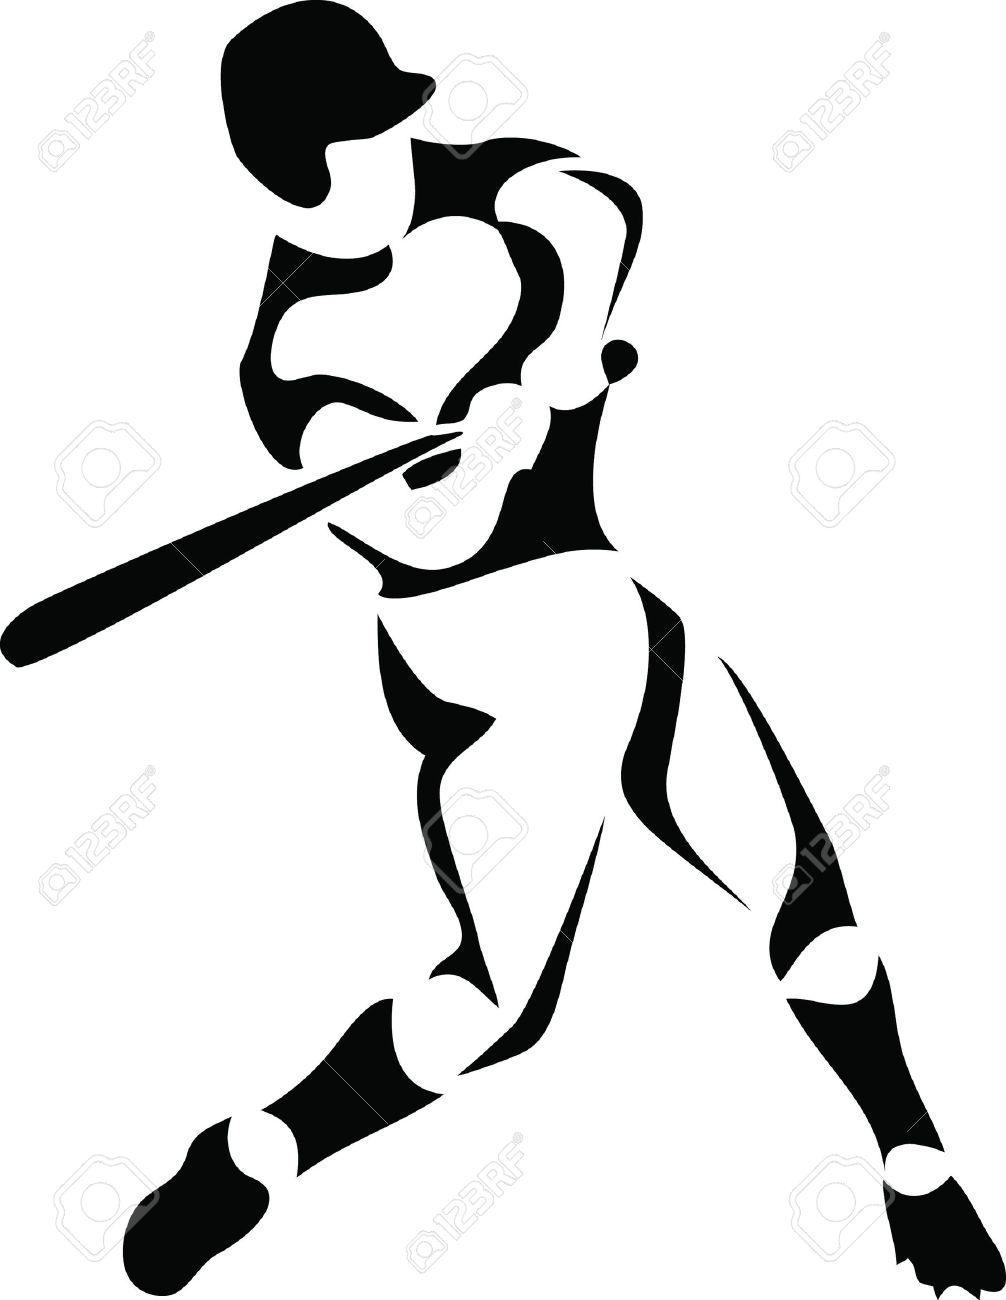 baseball player royalty free cliparts vectors and stock rh 123rf com basketball player victory from tacoma academy basketball player vectors